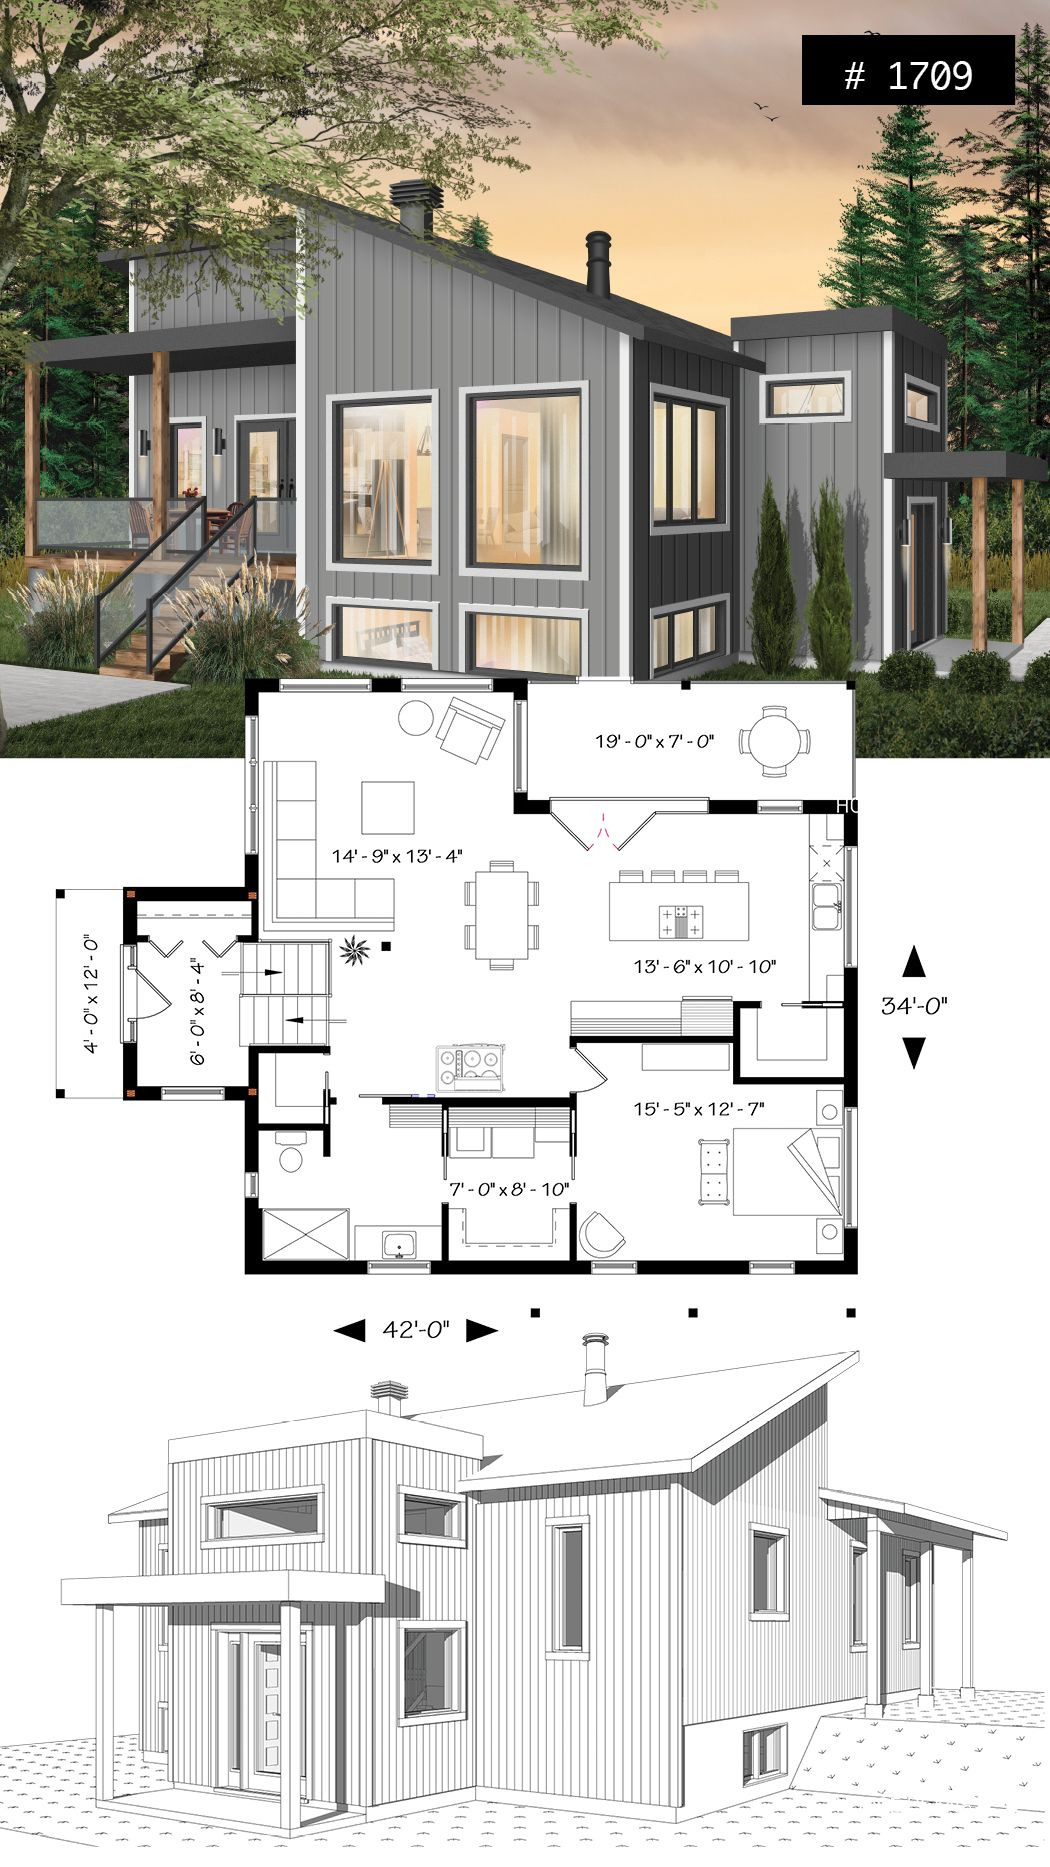 Open Concept Floor Plans for Small Homes Inspirational House Plan Billy No 1709